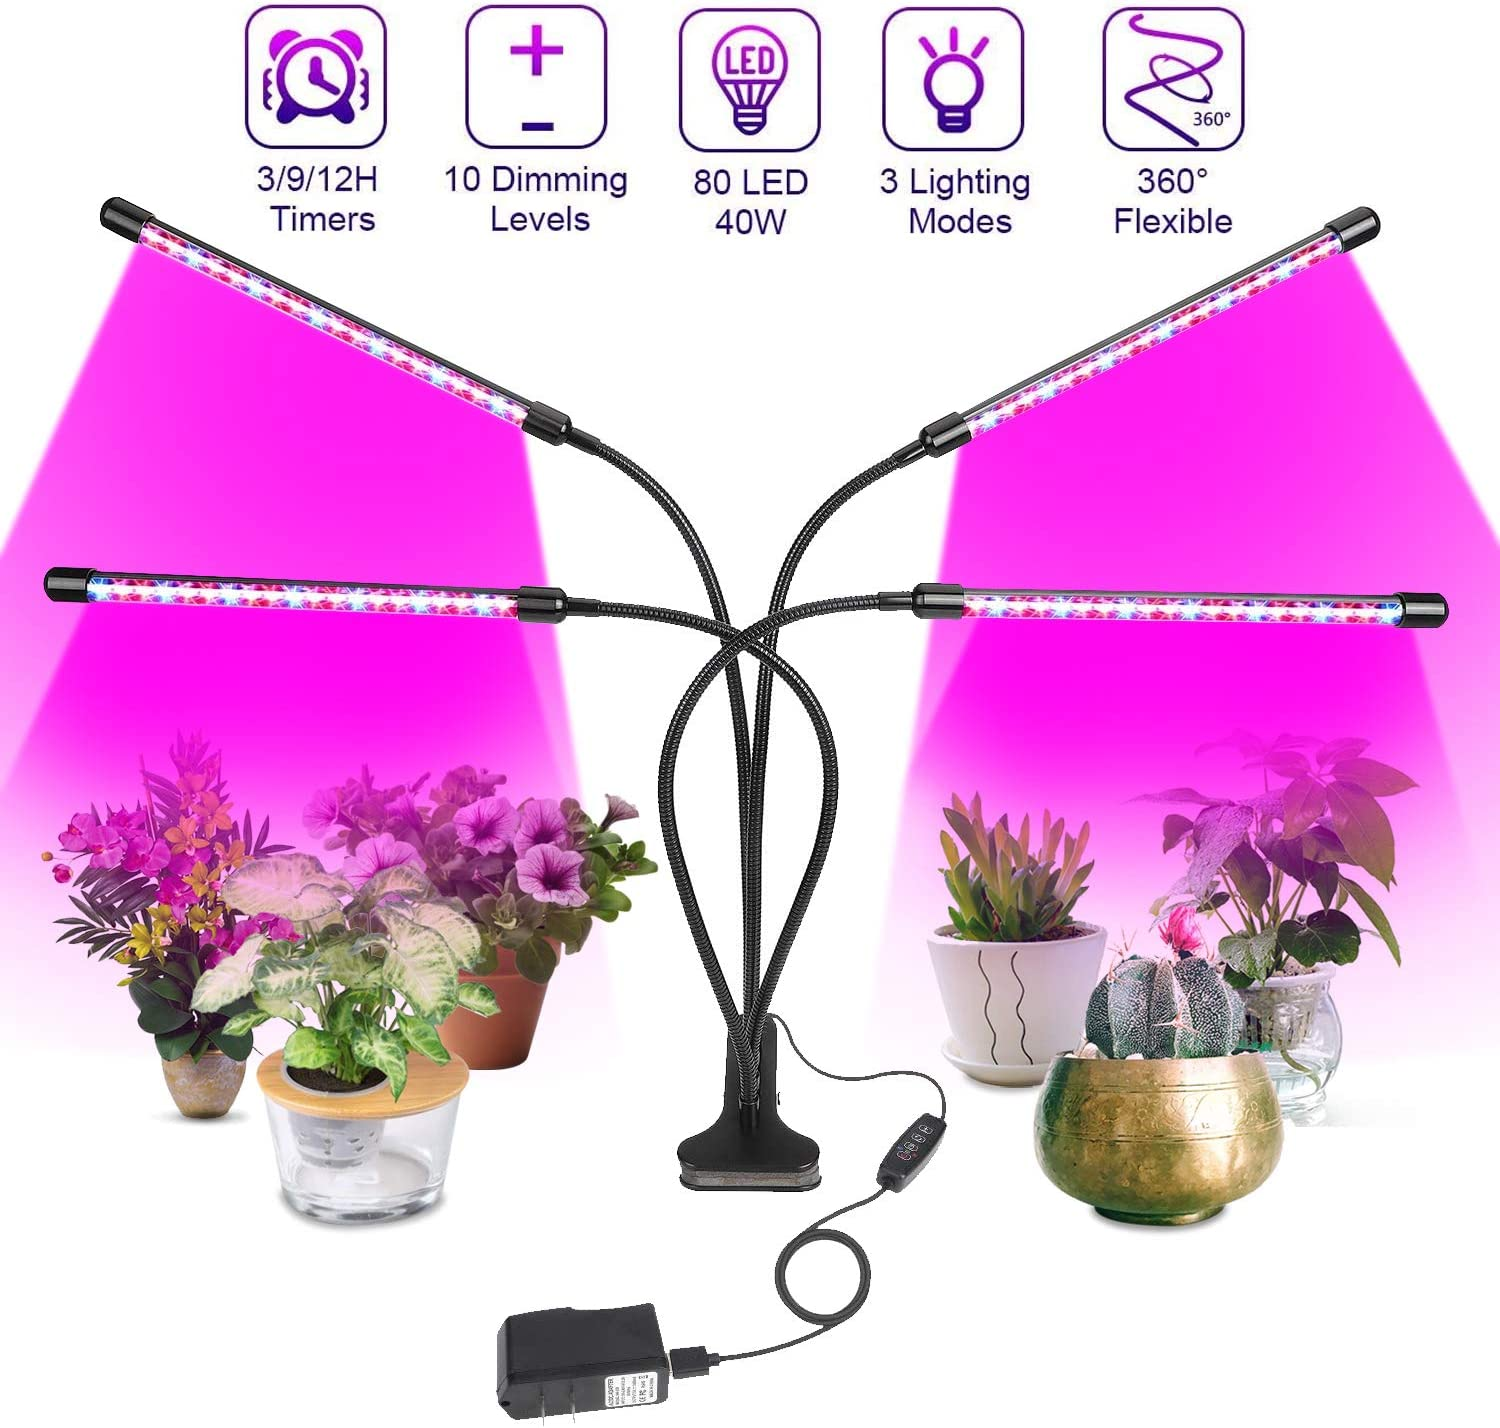 Grow Light, Plant Lights for Indoor Plants, Auto ON&Off Full Spectrum Plant Lights, with 3/9/12 H Timer, 10 Dimmable Lightness Full Spectrum Led Plant Growing Lamps